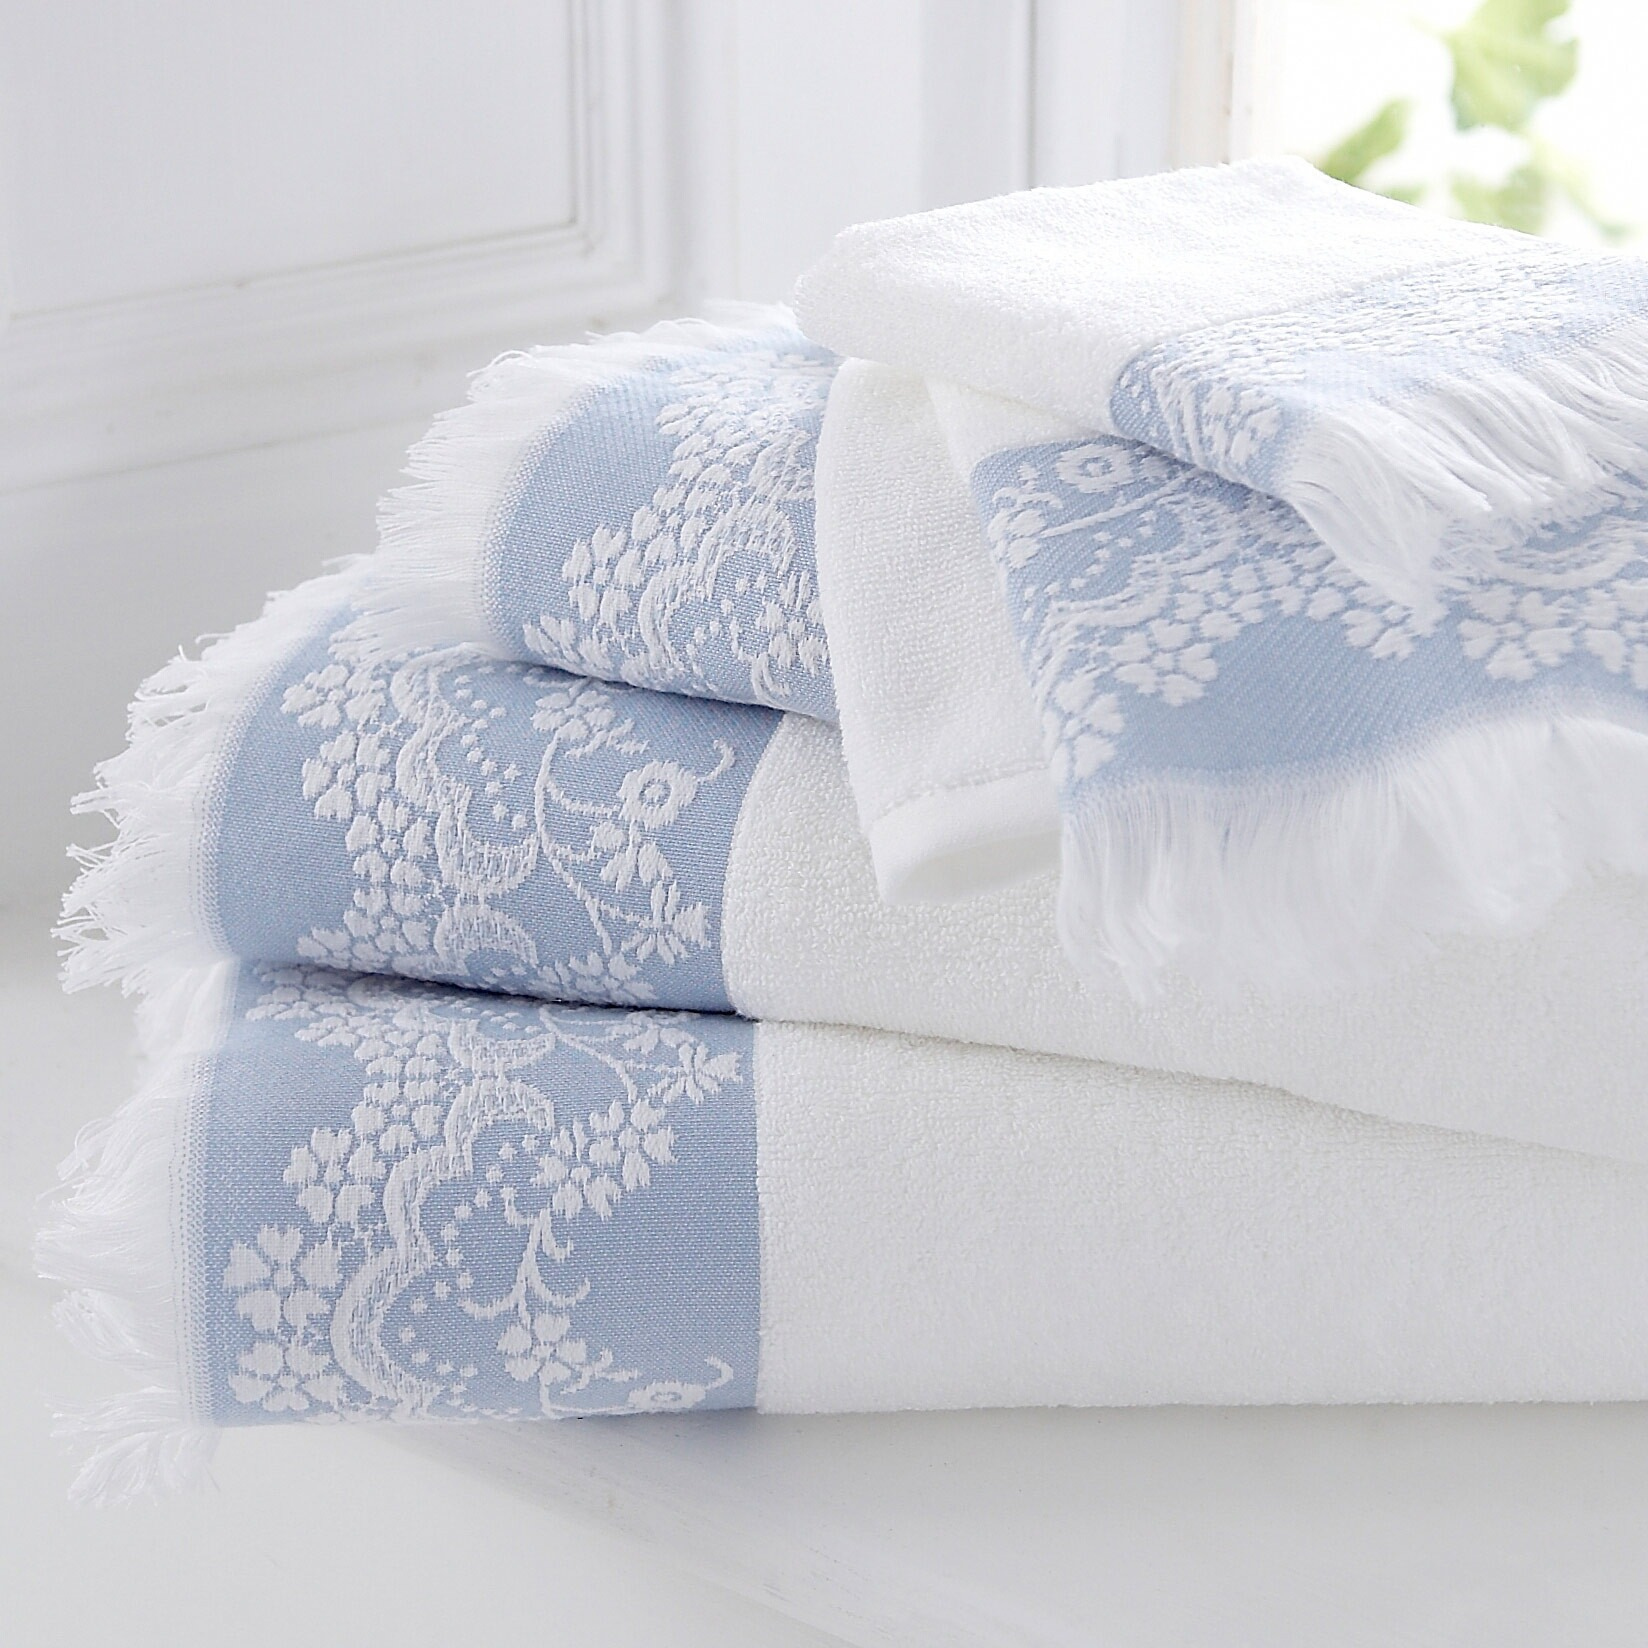 Lace Edged Fluffy Towels